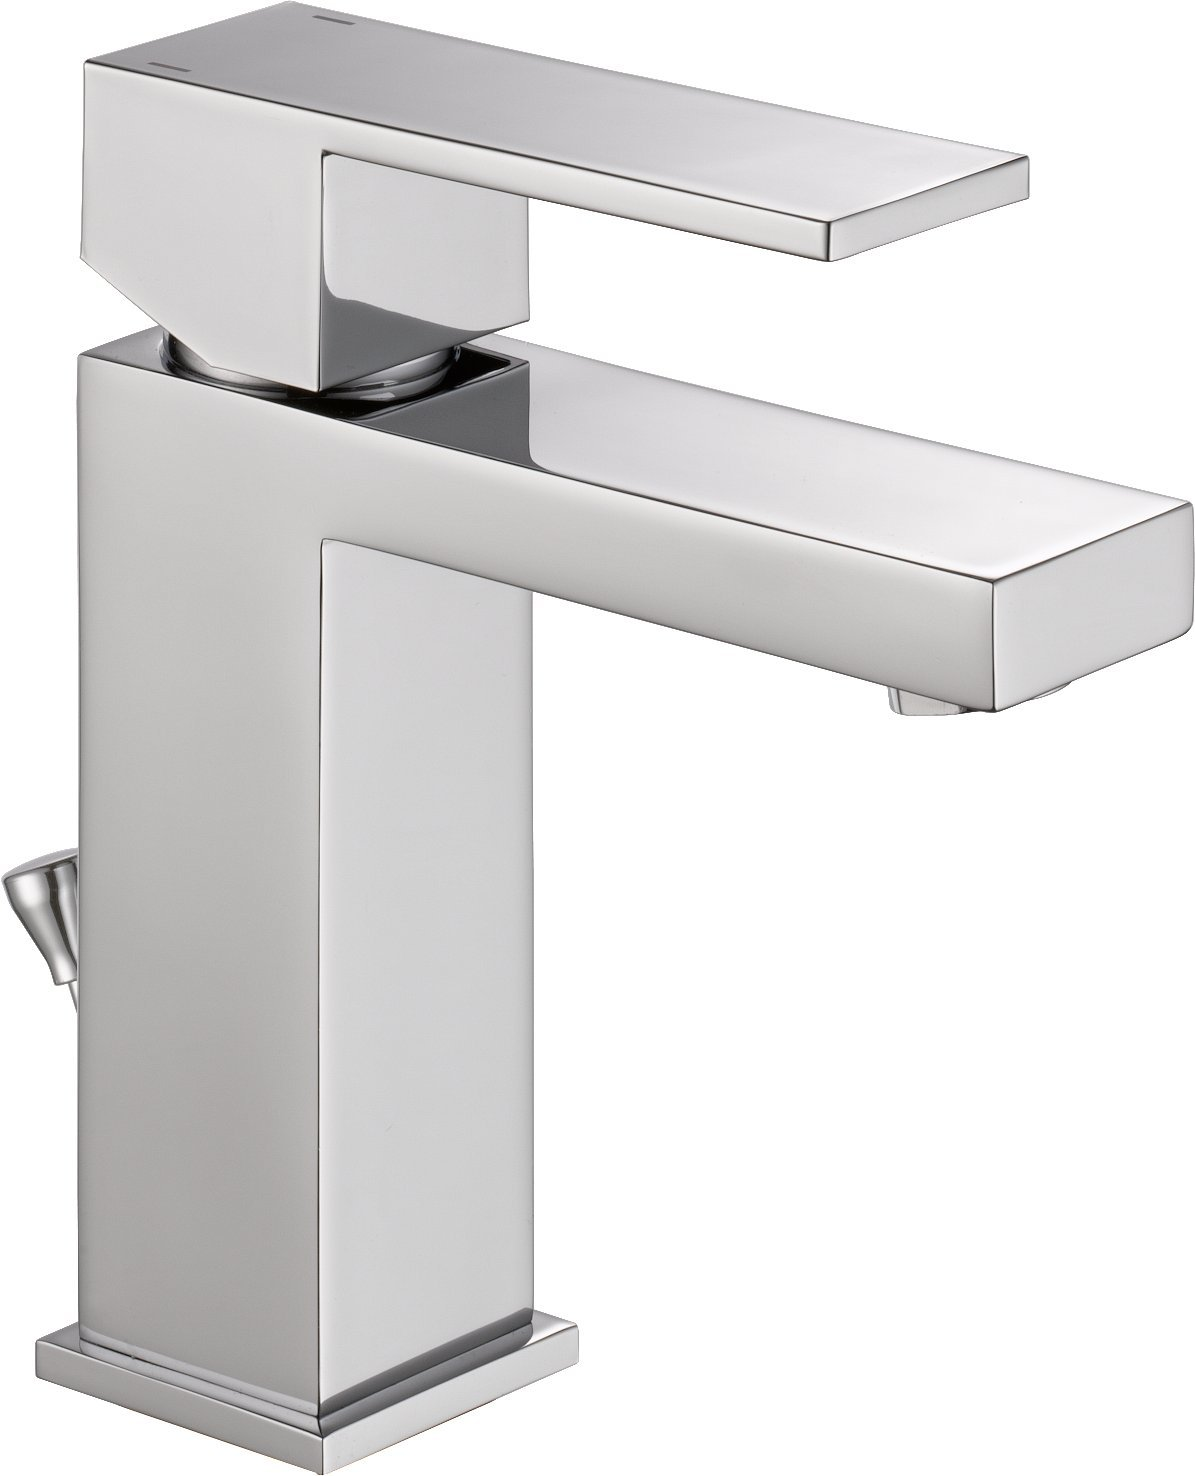 Delta Faucet Modern Single-Handle Bathroom Faucet with Drain Assembly, Chrome 567LF-PP by DELTA FAUCET